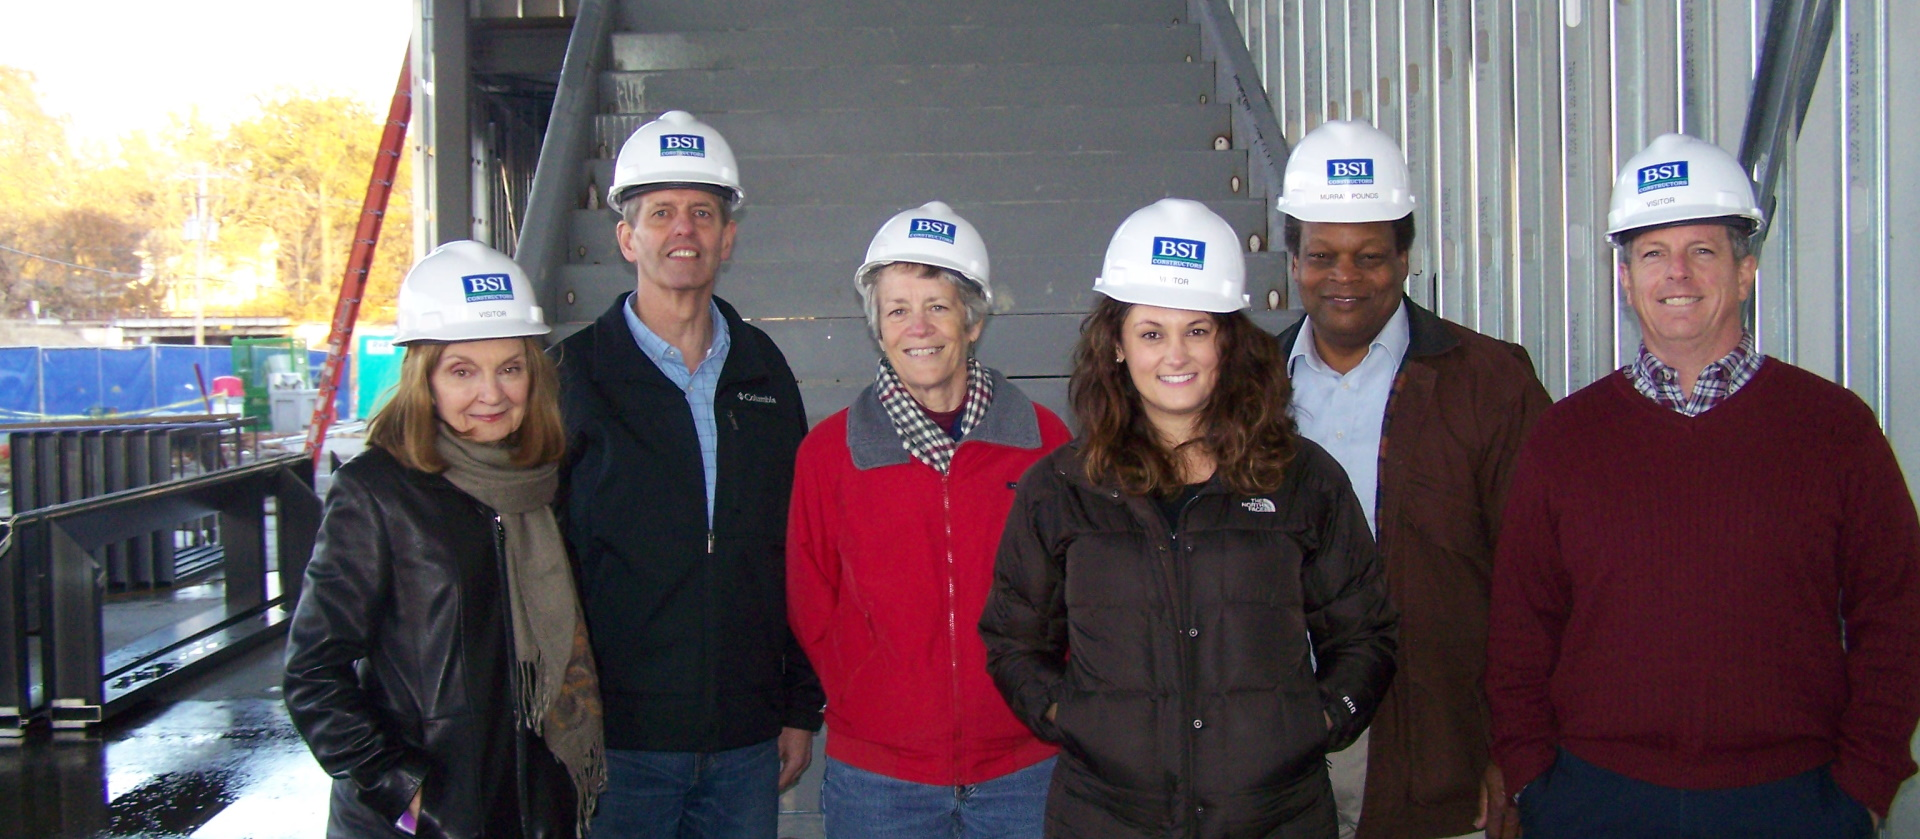 City Council Visits Performing Arts Center Construction